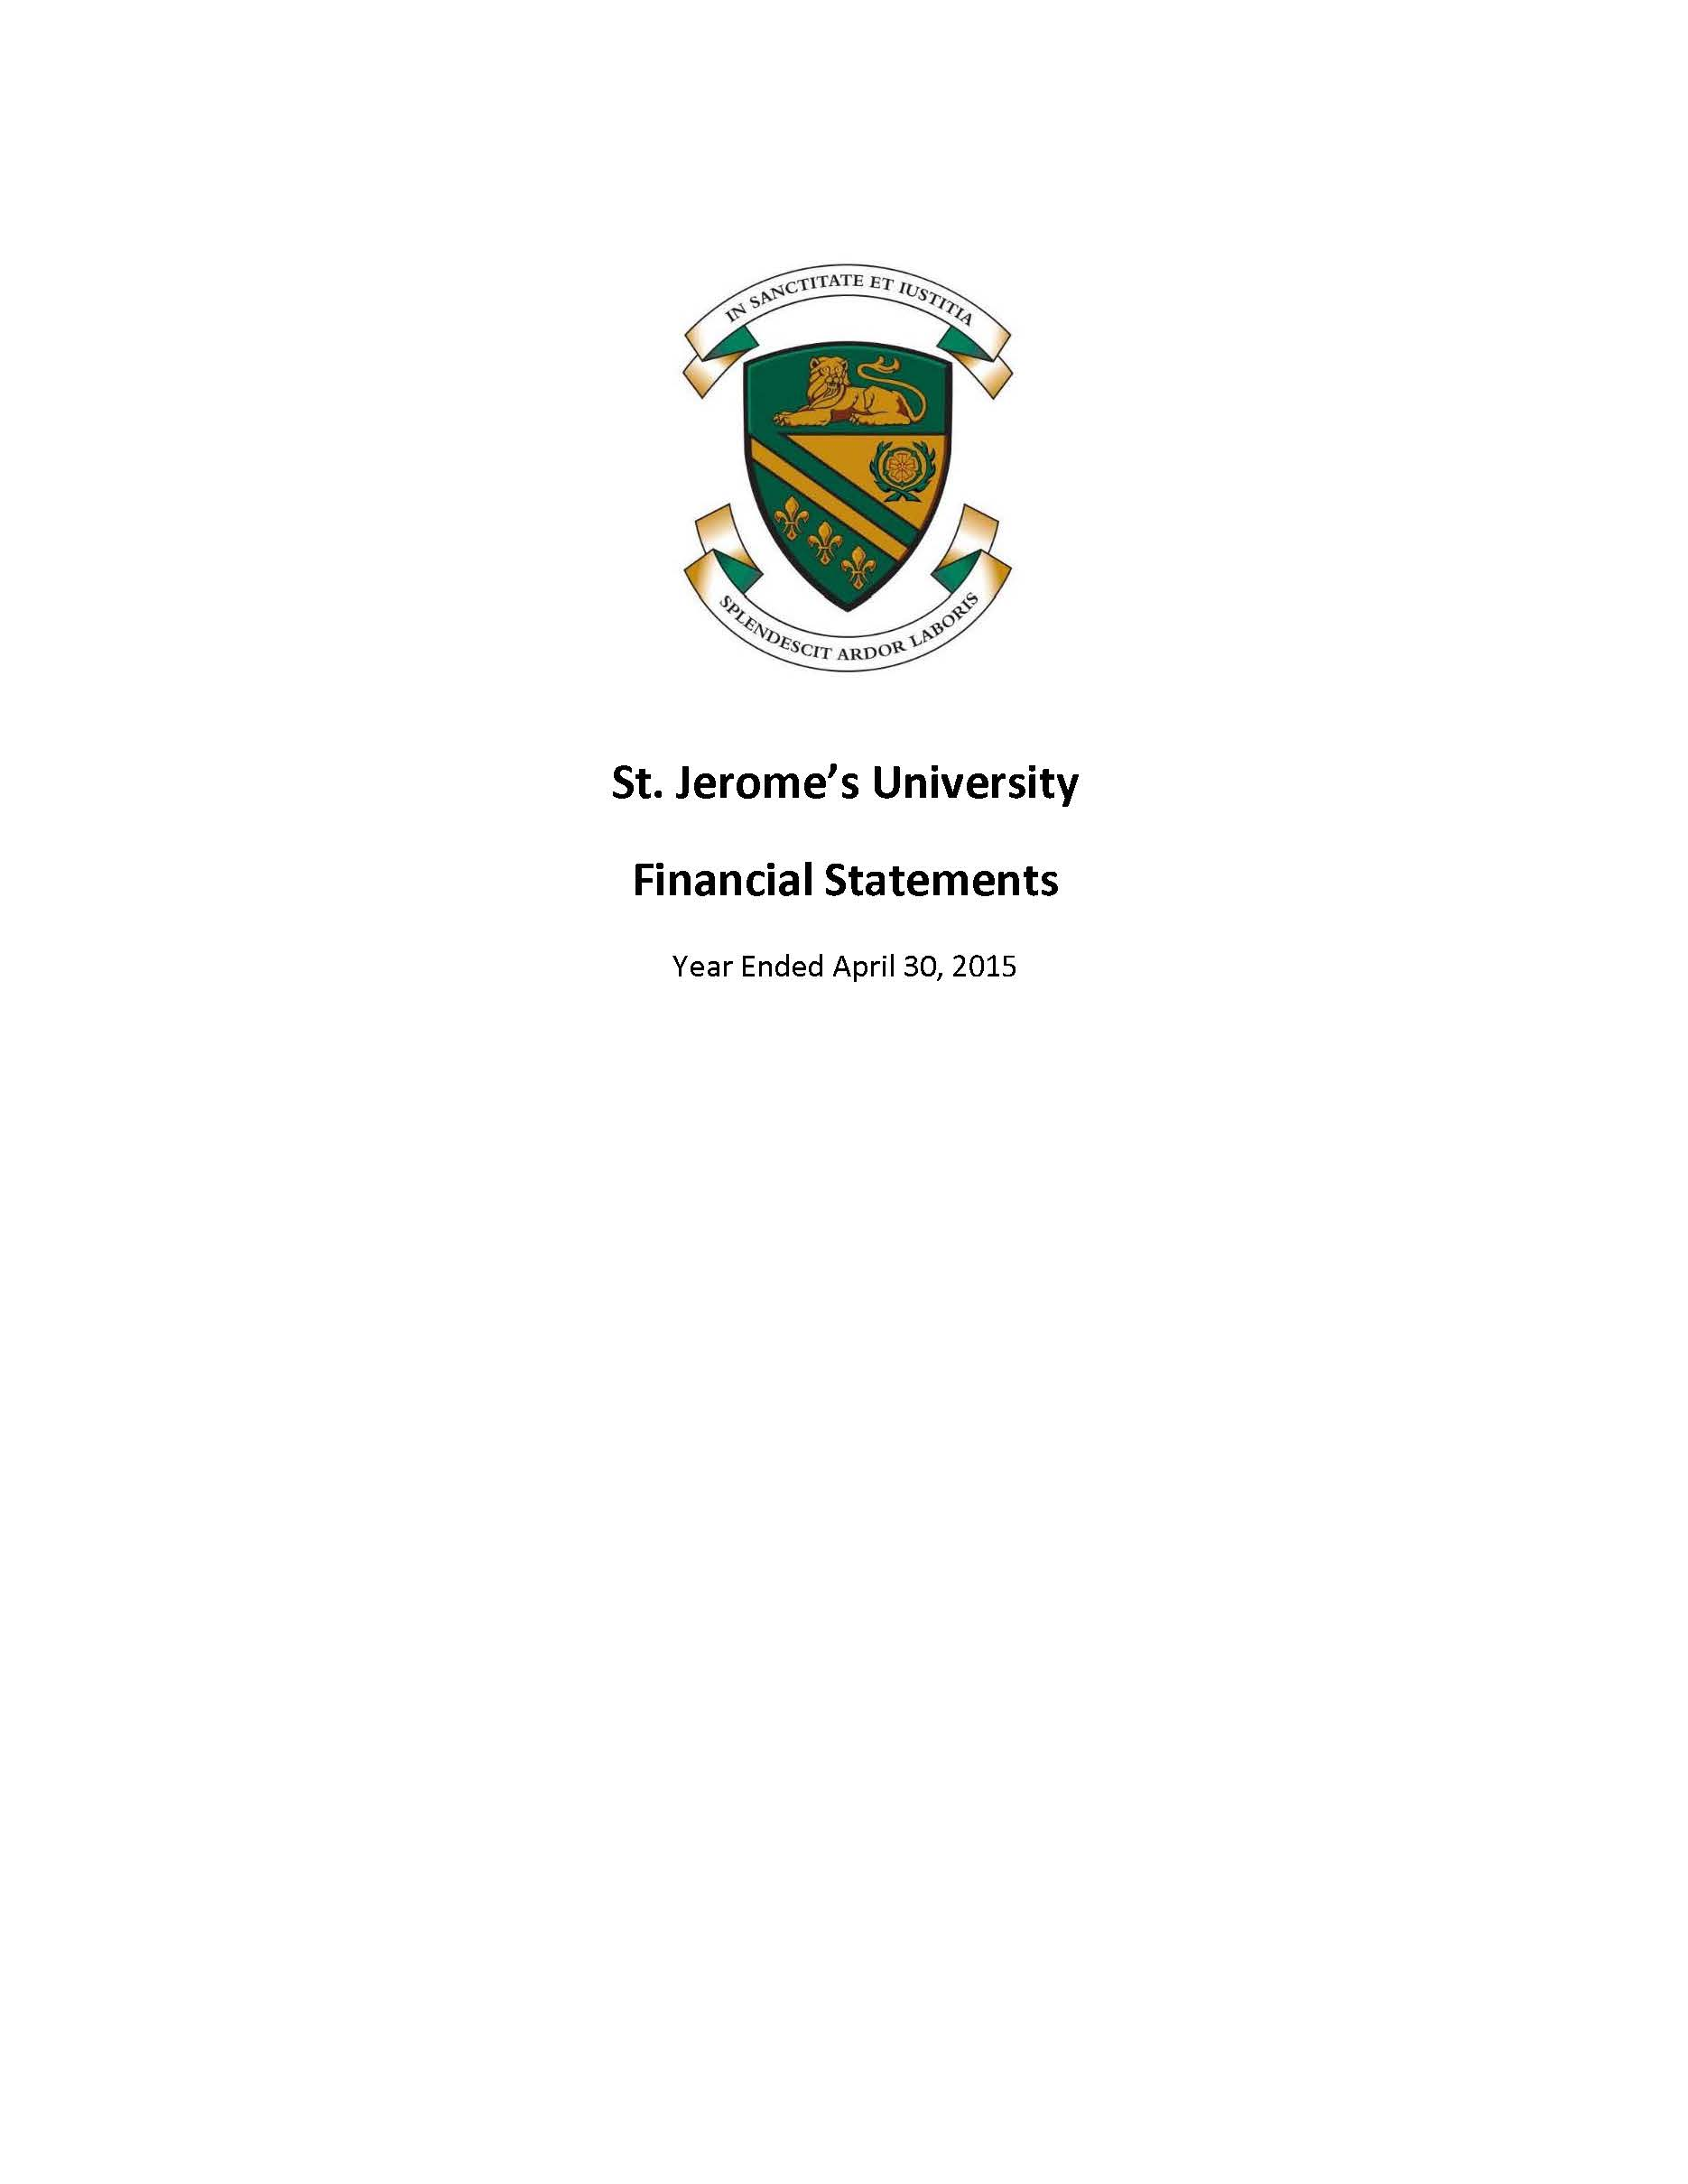 SJU Financial Statements Ending 2015